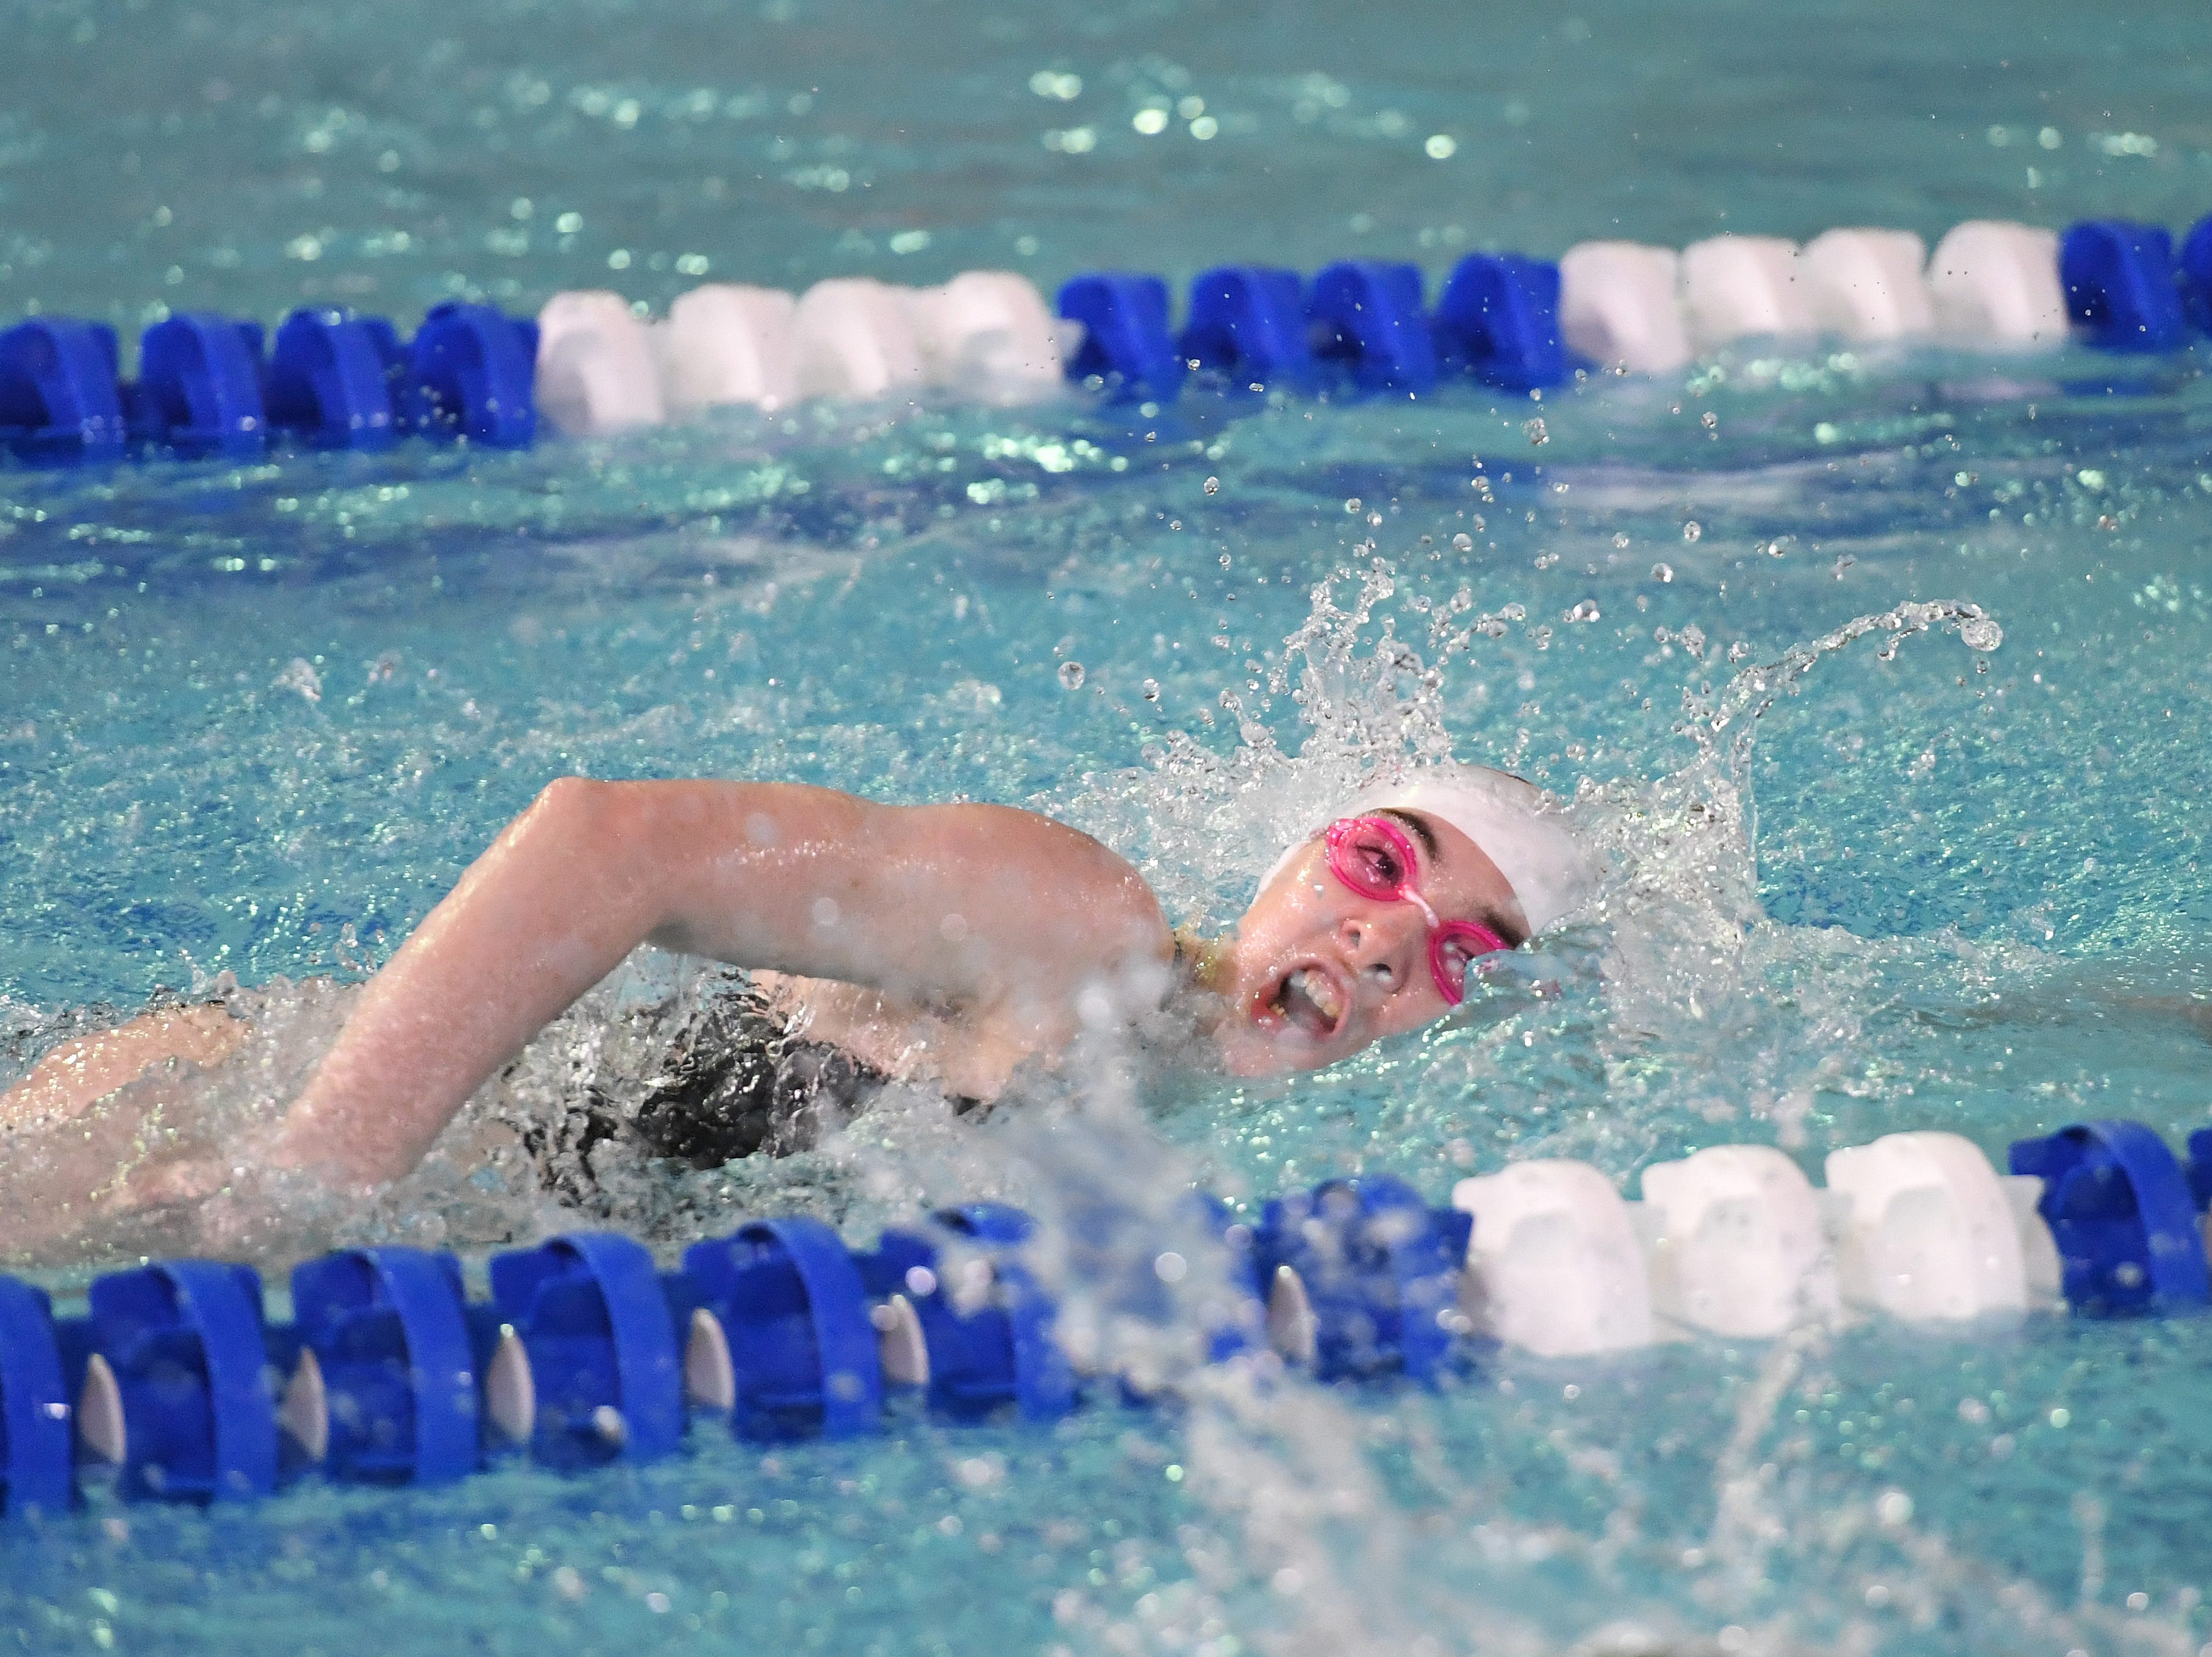 NJSIAA swimming sectional finals: Mountain Lakes vs Kinnelon in North I-C at Passaic County Technical Institute on Friday, February 15, 2019. Emma Devine, of Mountain Lakes, in the 200 Freestyle.